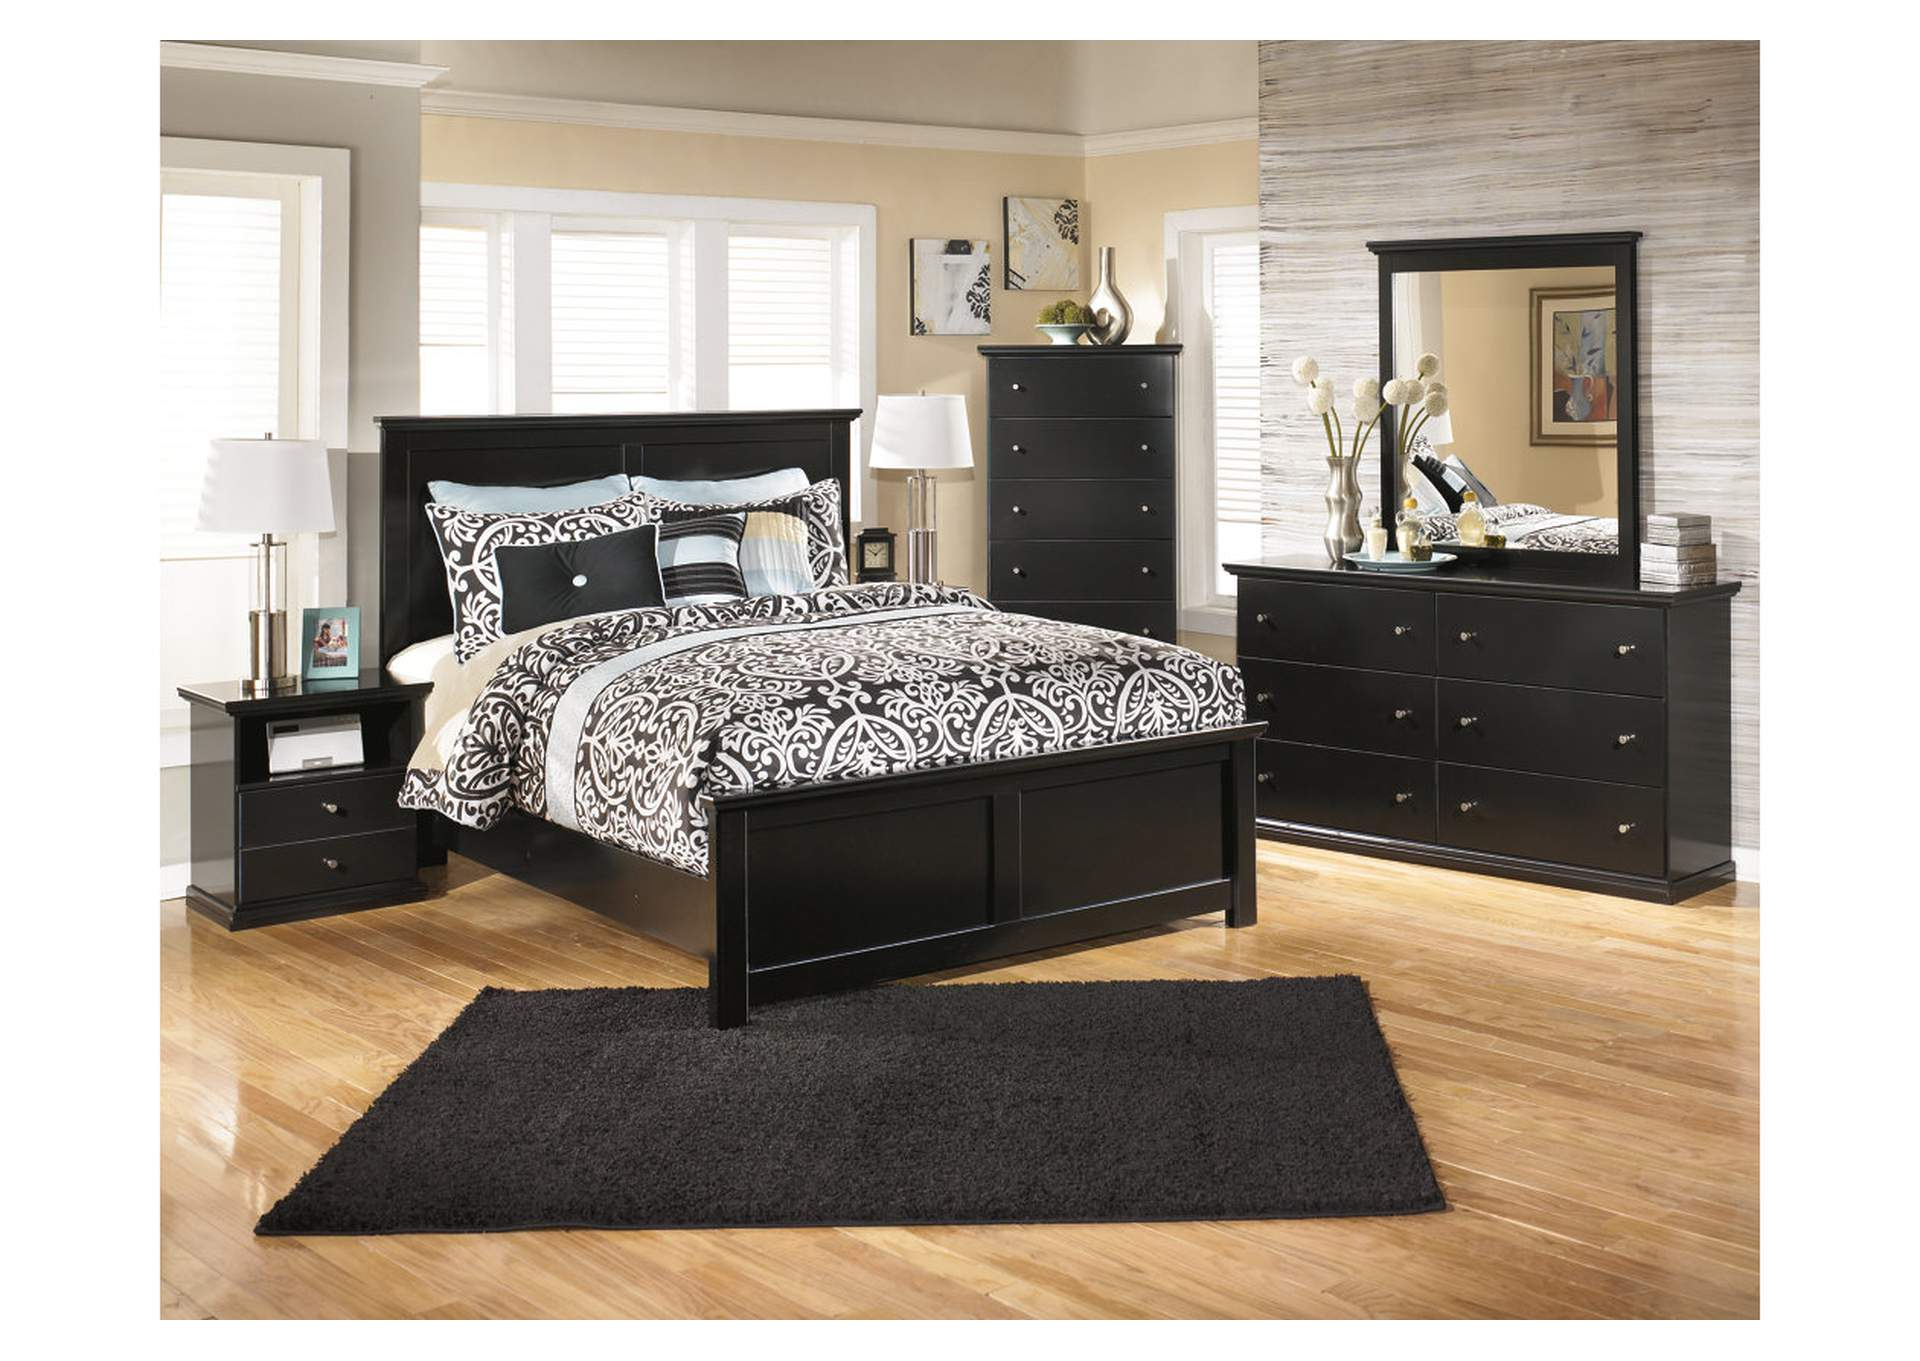 Maribel Black Queen Panel Bed w/Dresser, Mirror & Drawer Chest,Signature Design By Ashley